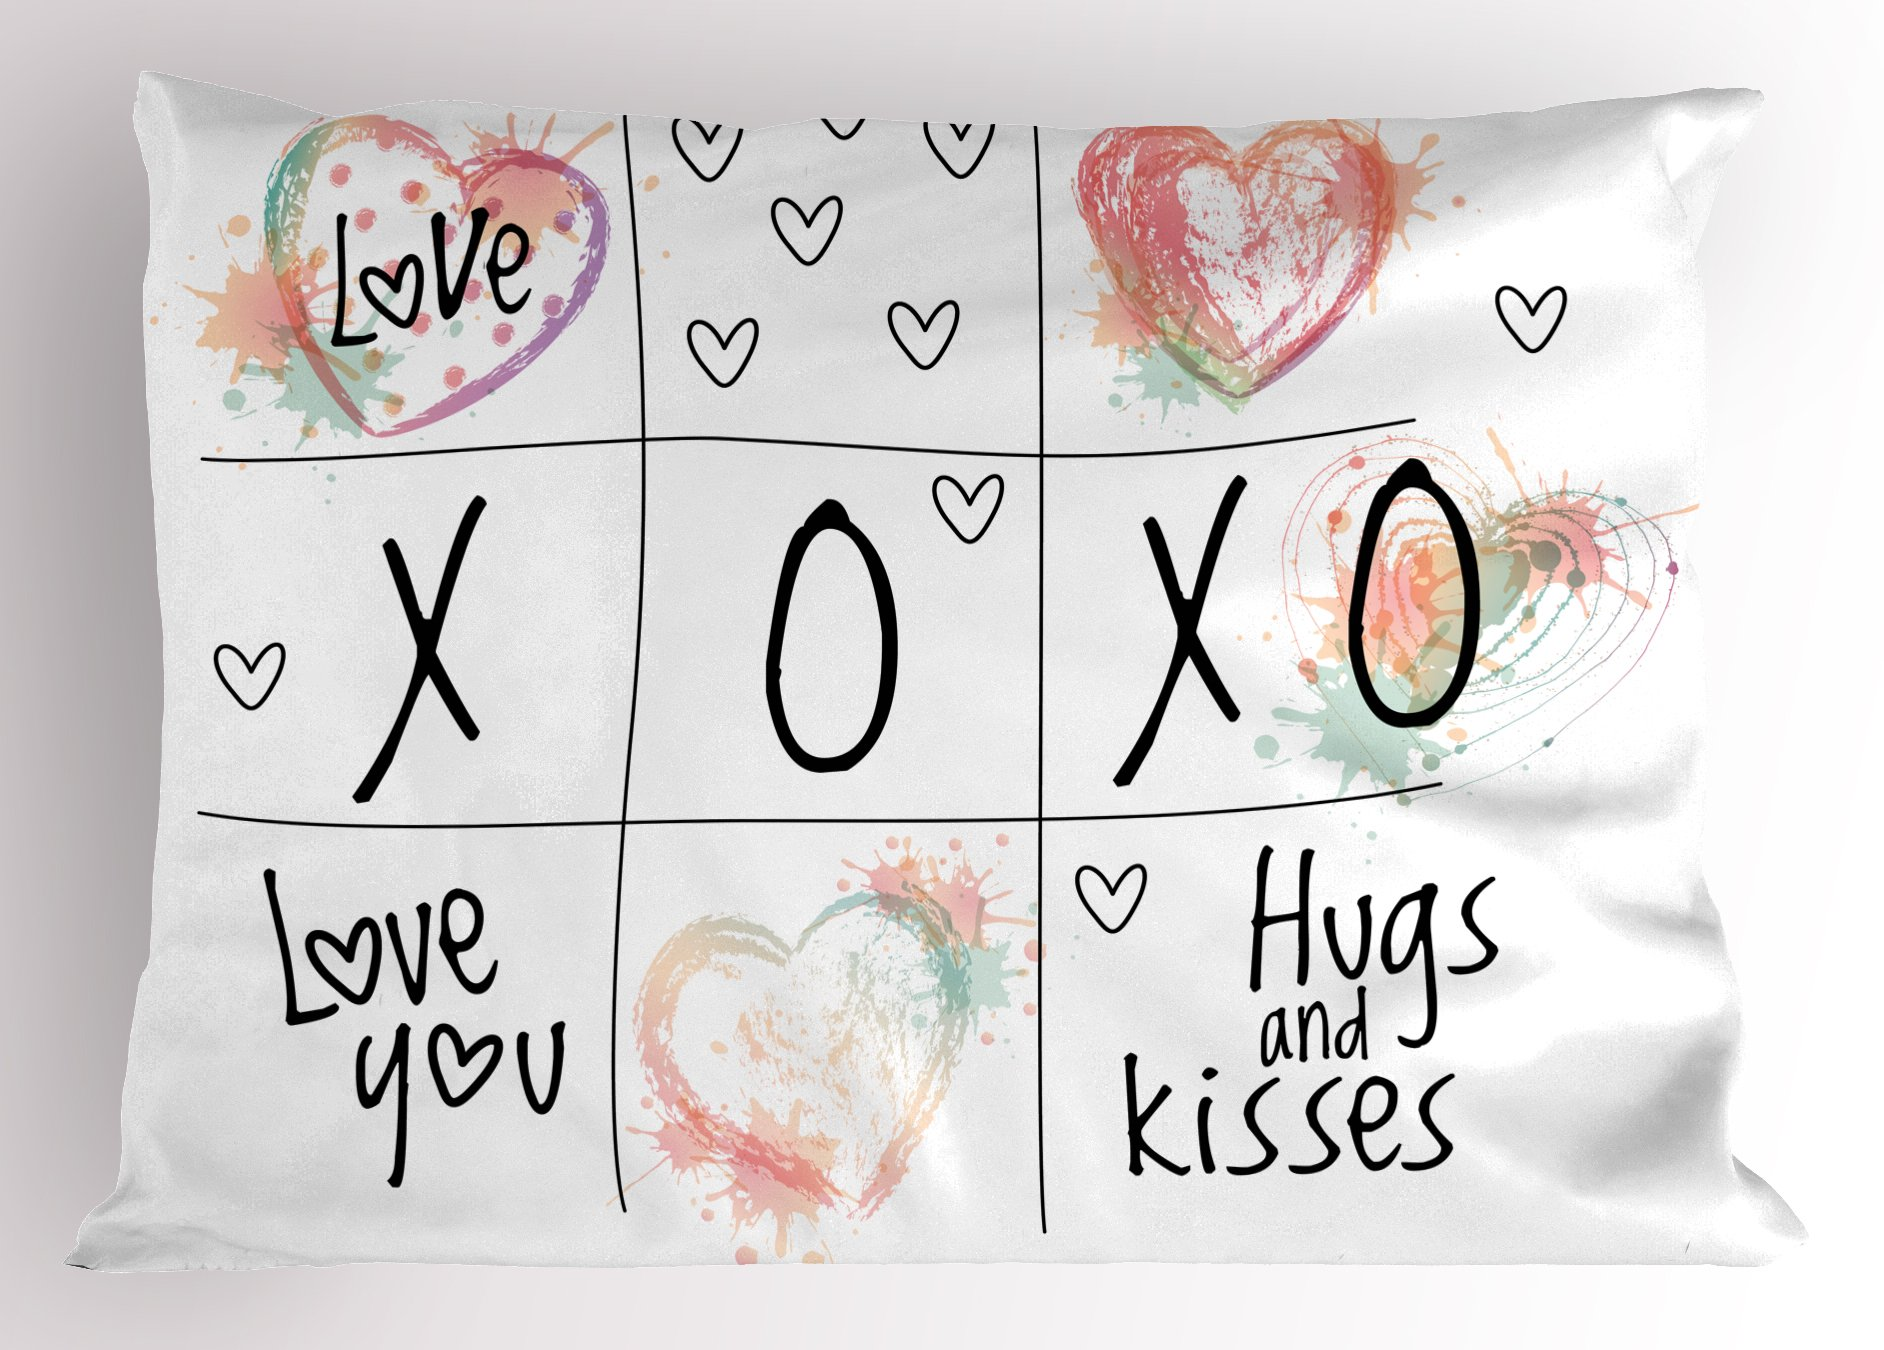 Ambesonne Xo Decor Pillow Sham, Love You Hugs Kisses Watercolor Splashes Heart Icon Valentines Artwork, Decorative Standard Size Printed Pillowcase, 26 X 20 inches, Coral Mint Black White